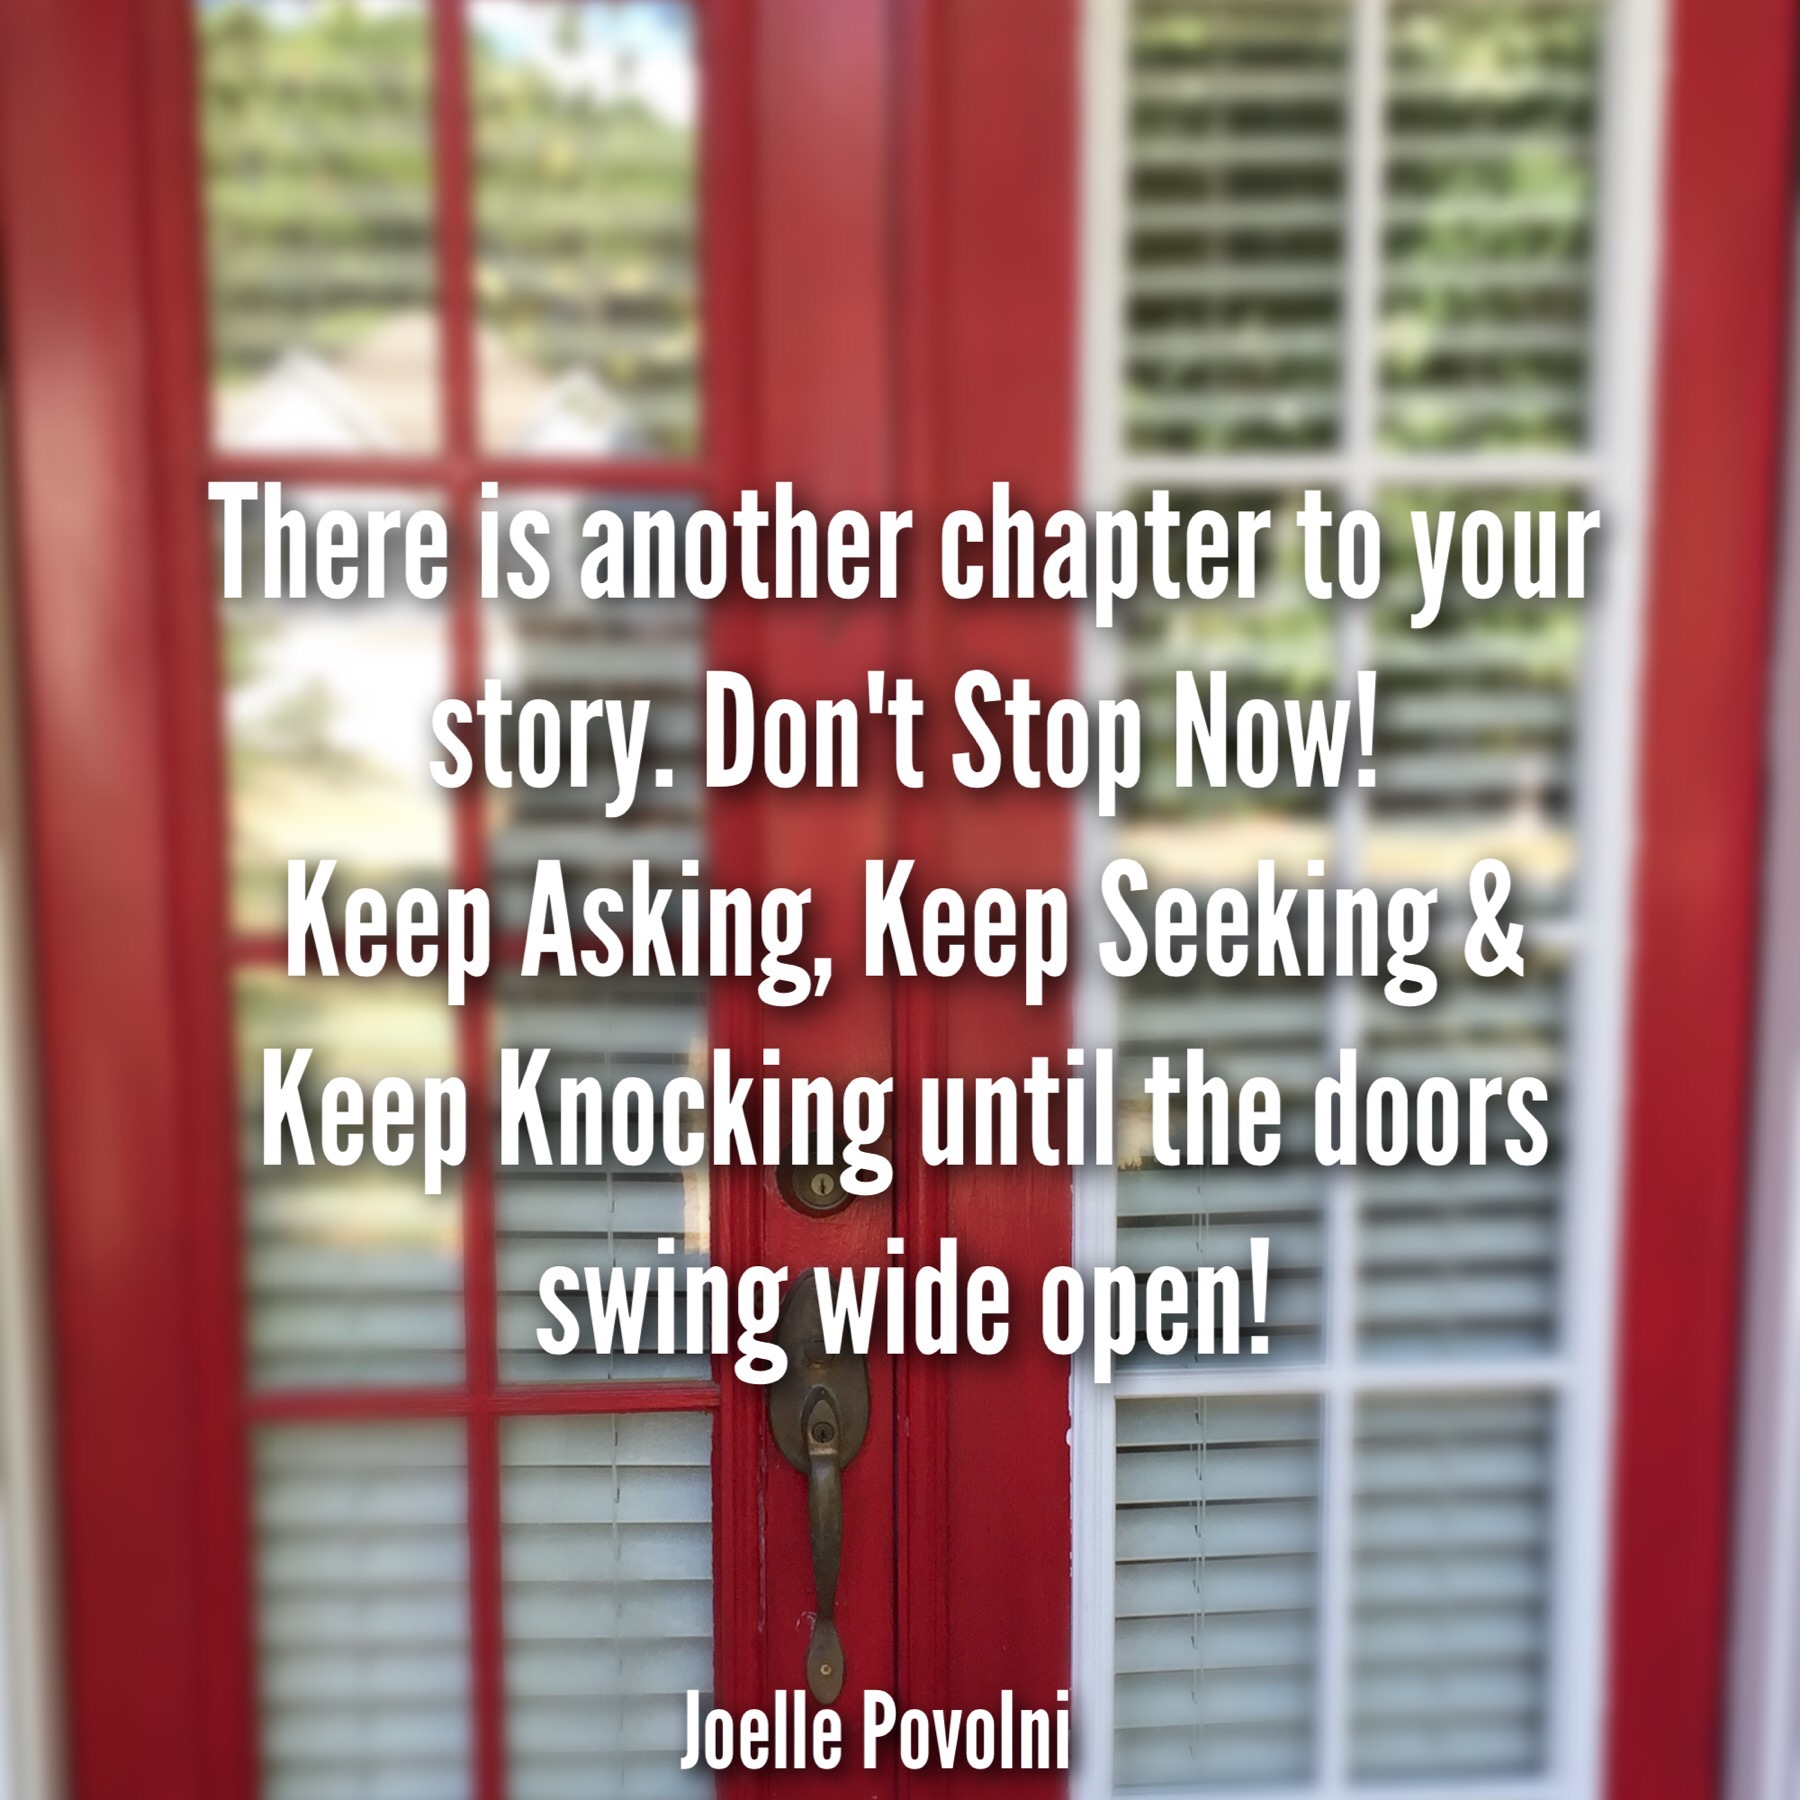 There is Another Chapter to Your Story. Don't Stop Now! Keep Asking, Keep Seeking, and Keep on Knocking!